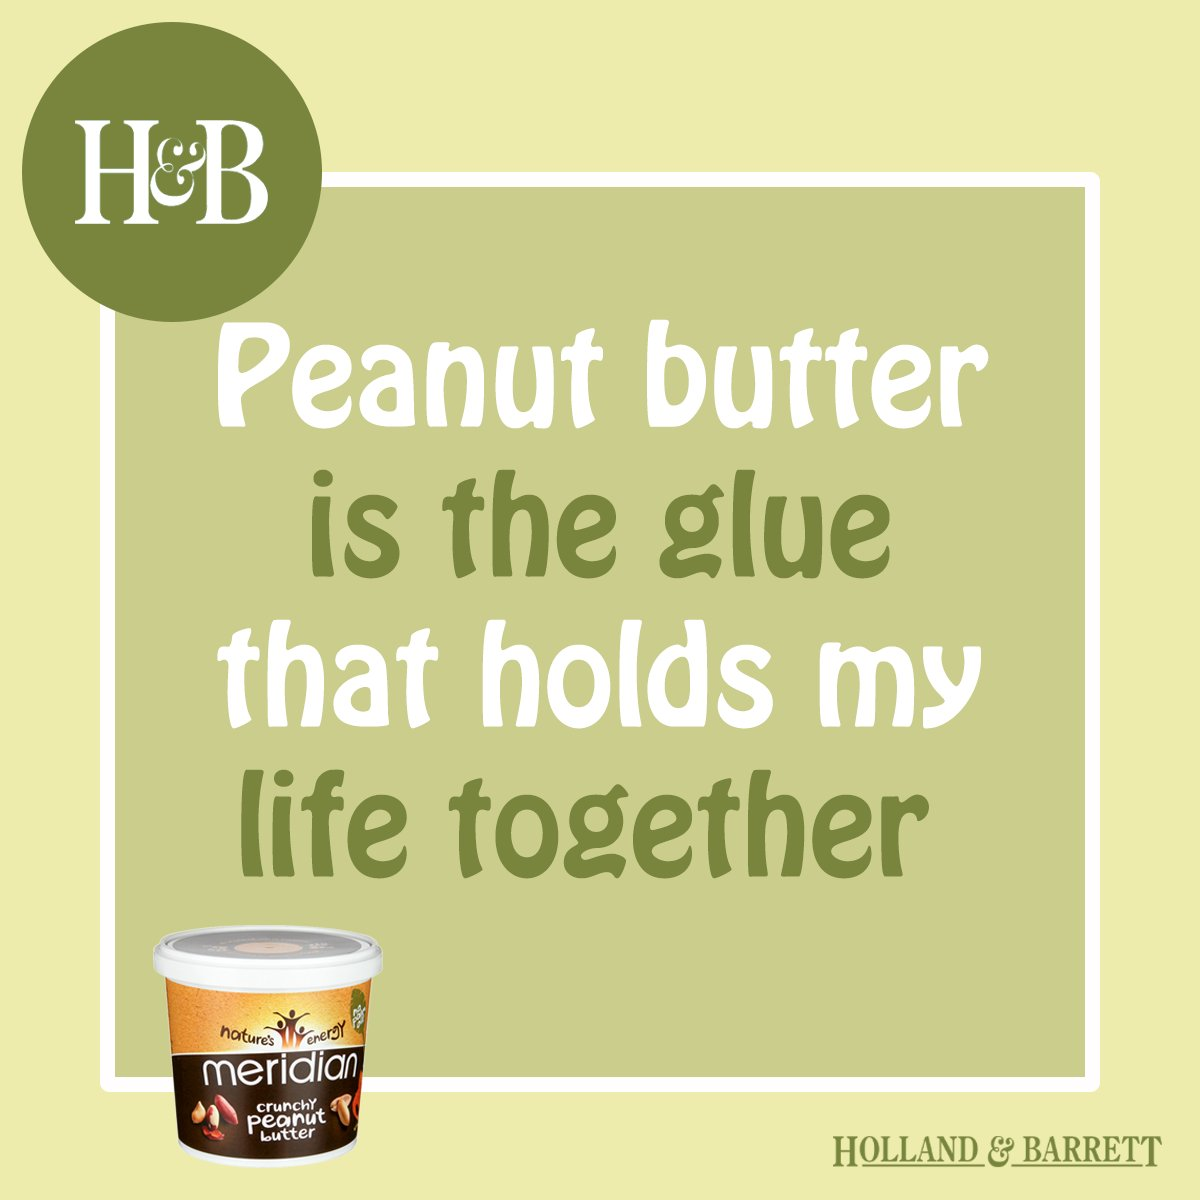 Ah, @MeridianFoods peanut butter. How we love thee. Hands up if you agree! 🙋 https://t.co/7eC9RVkrFu https://t.co/8mqt2NIvLl